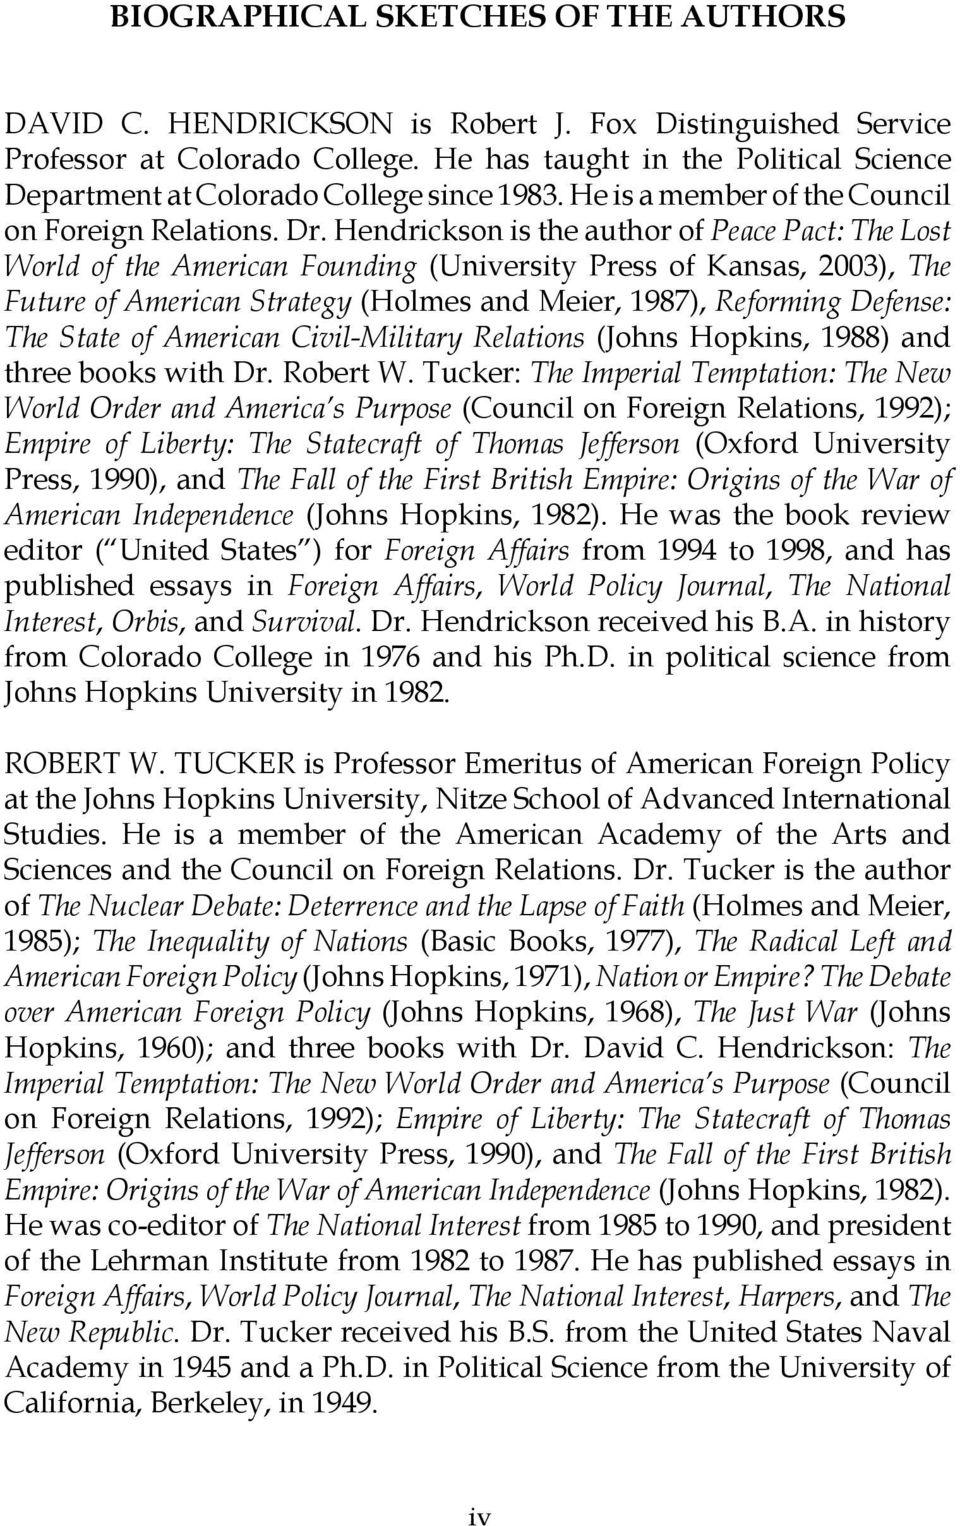 Hendrickson is the author of Peace Pact: The Lost World of the American Founding (University Press of Kansas, 2003), The Future of American Strategy (Holmes and Meier, 1987), Reforming Defense: The